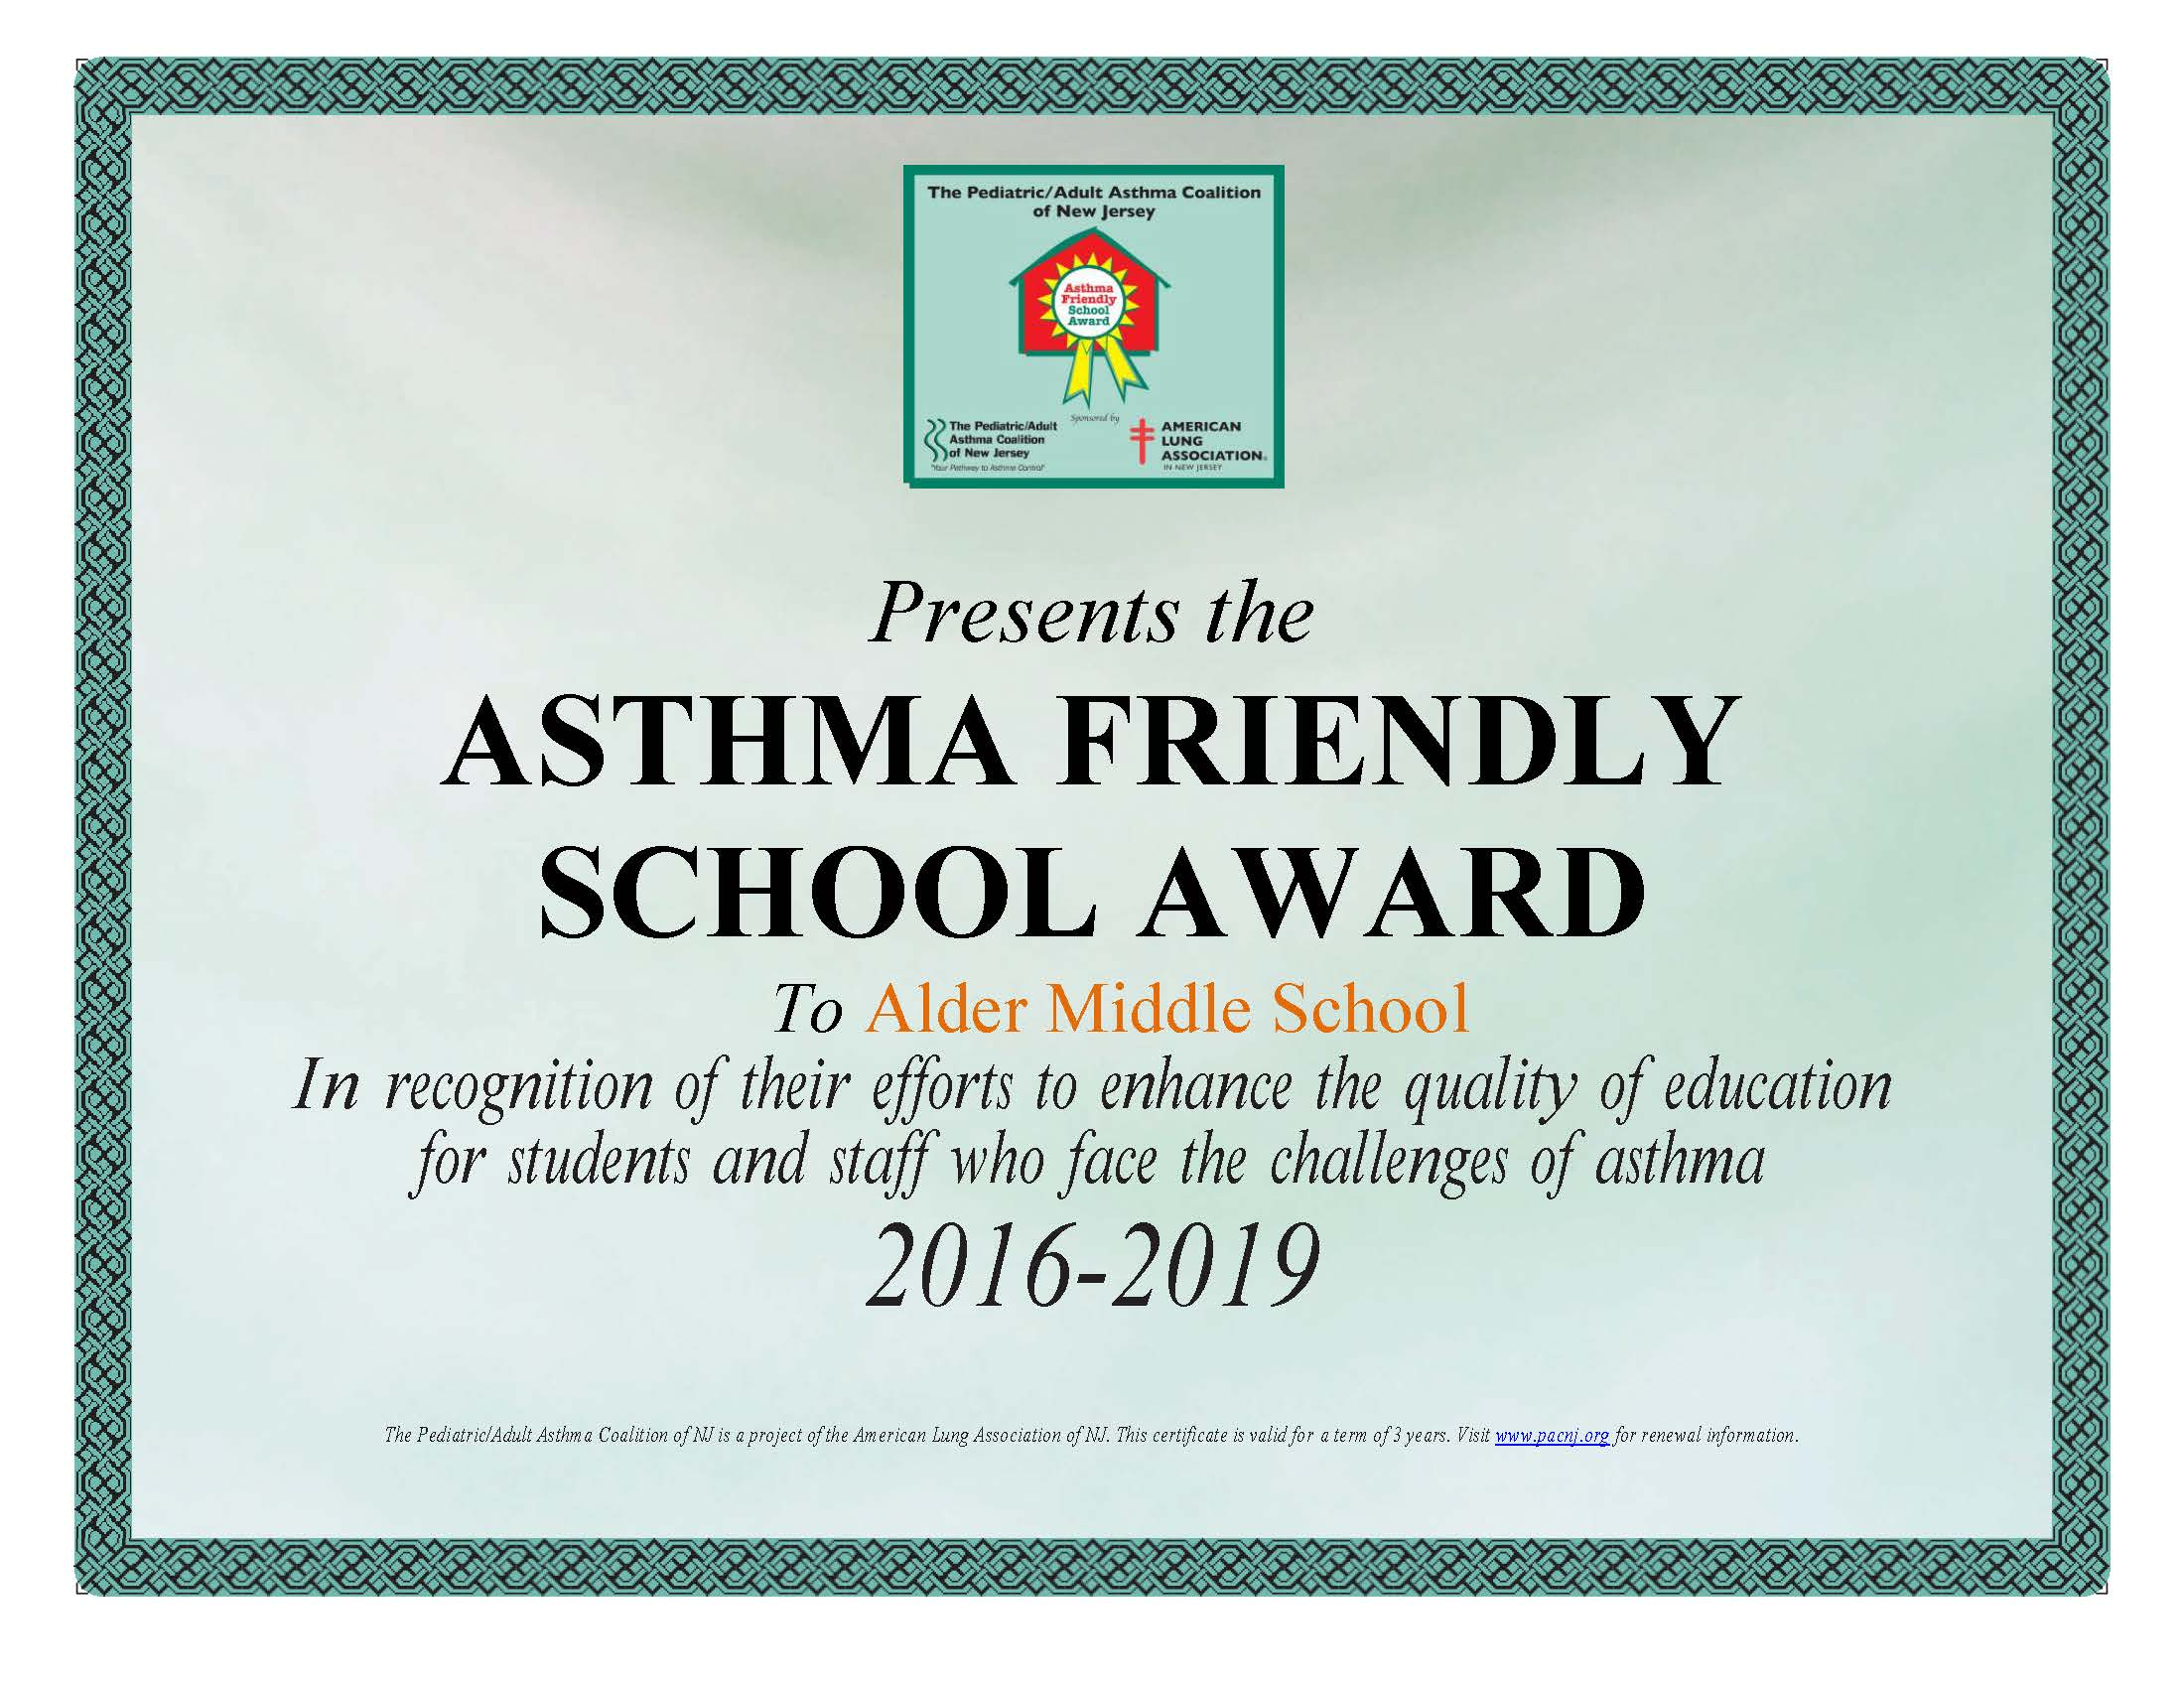 Sustainable jersey for schools certification report asthma friendly school documentation alder certificate xflitez Gallery